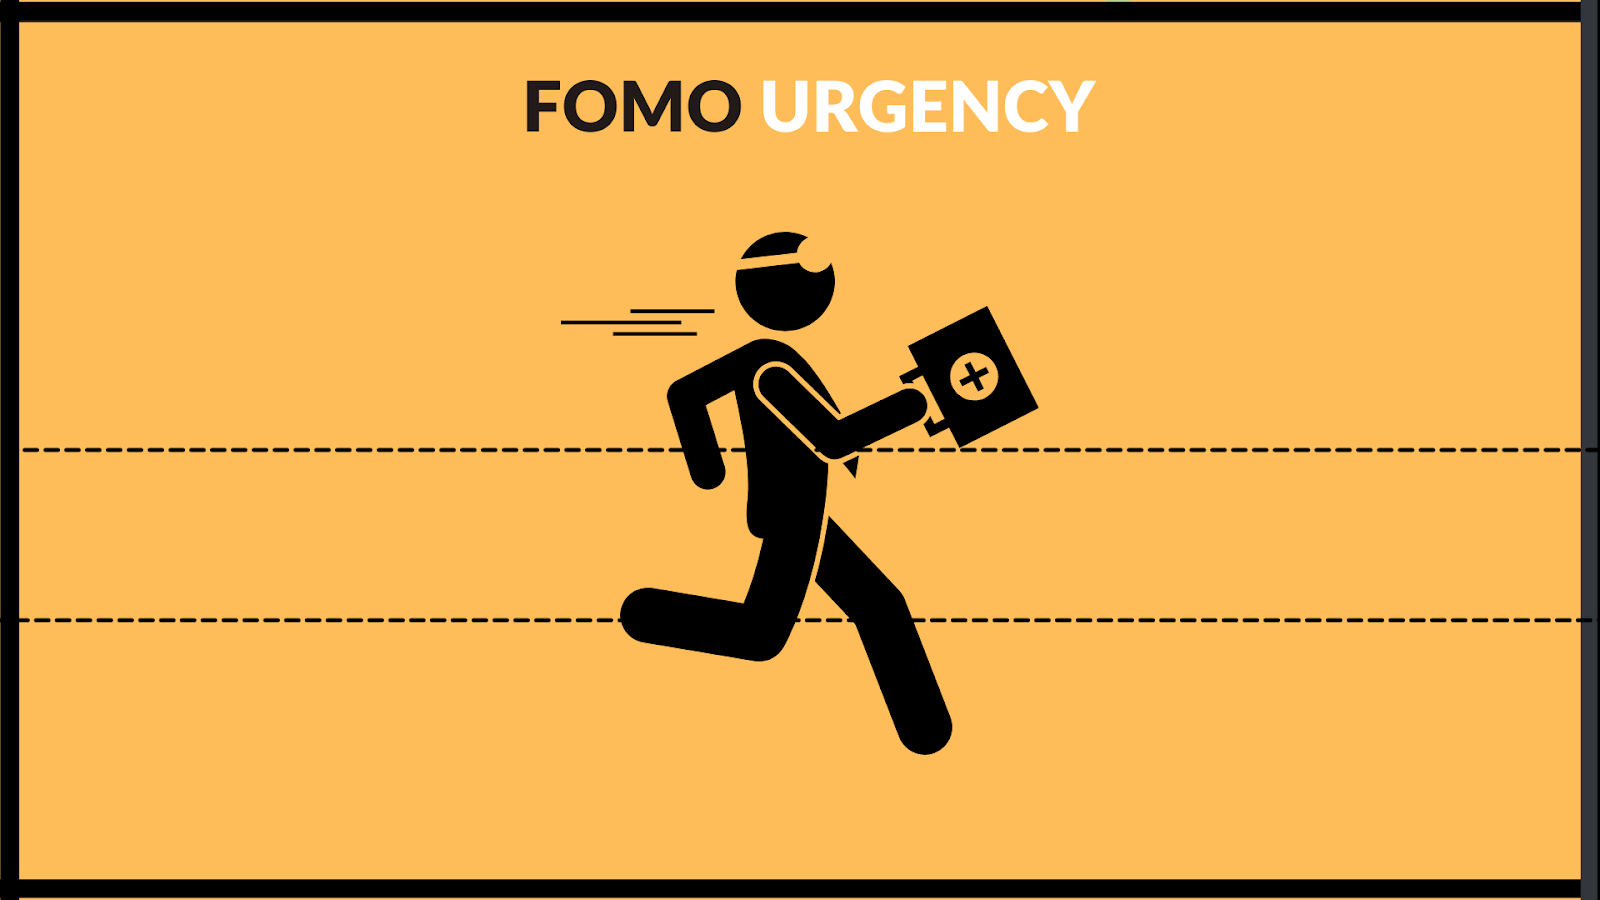 Create fear of missing out urgency in your marketing strategy